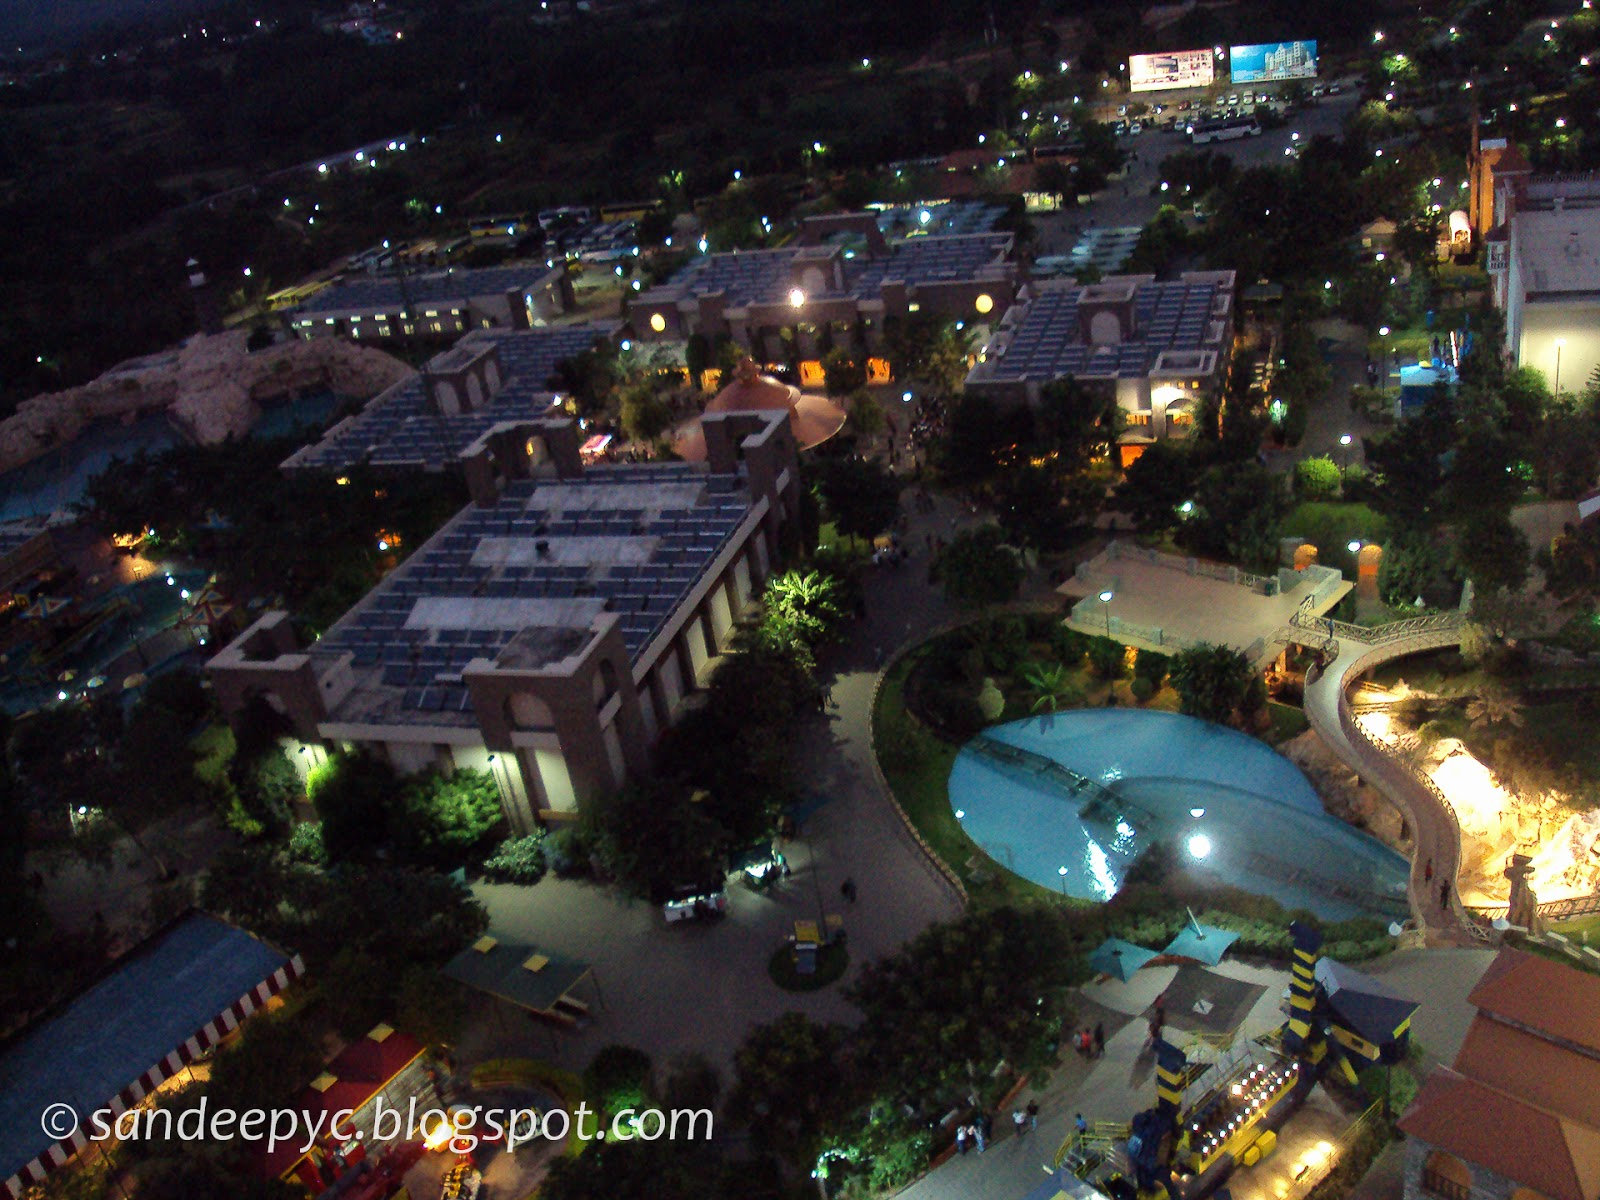 Night view of the WonderLa